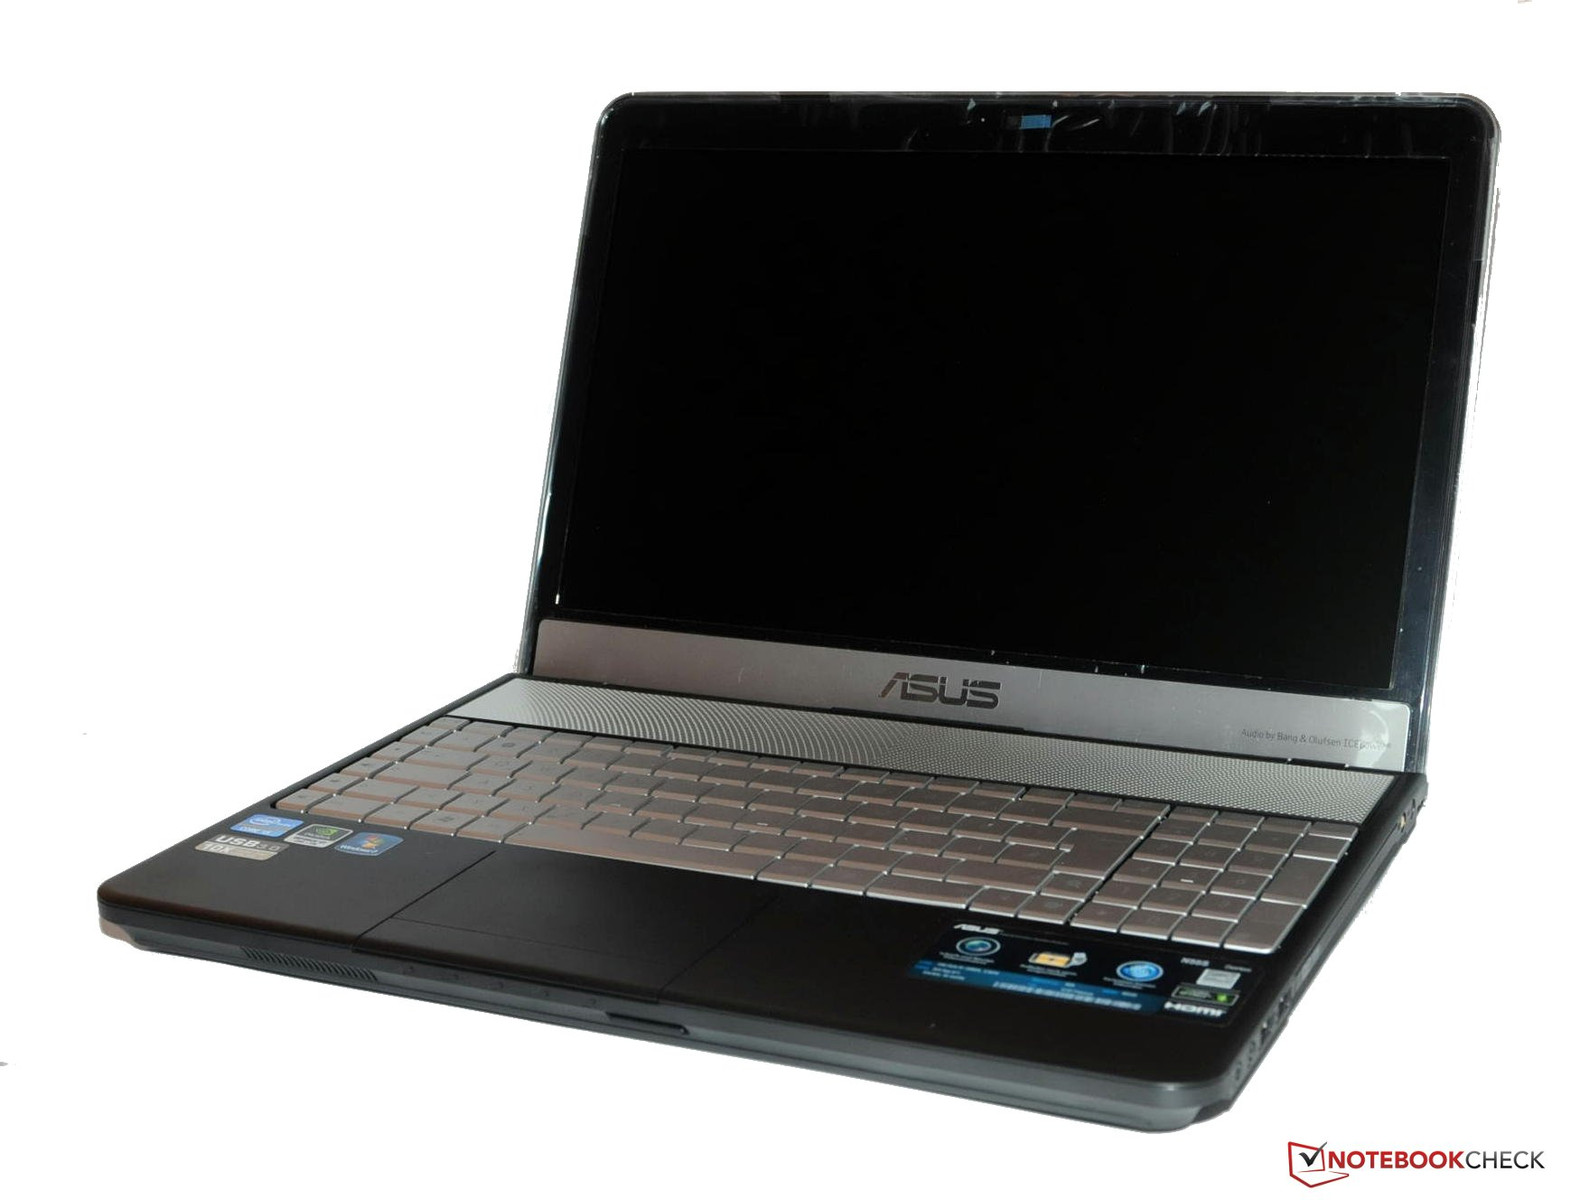 ASUS N55SL ATHEROS LAN WINDOWS 10 DRIVER